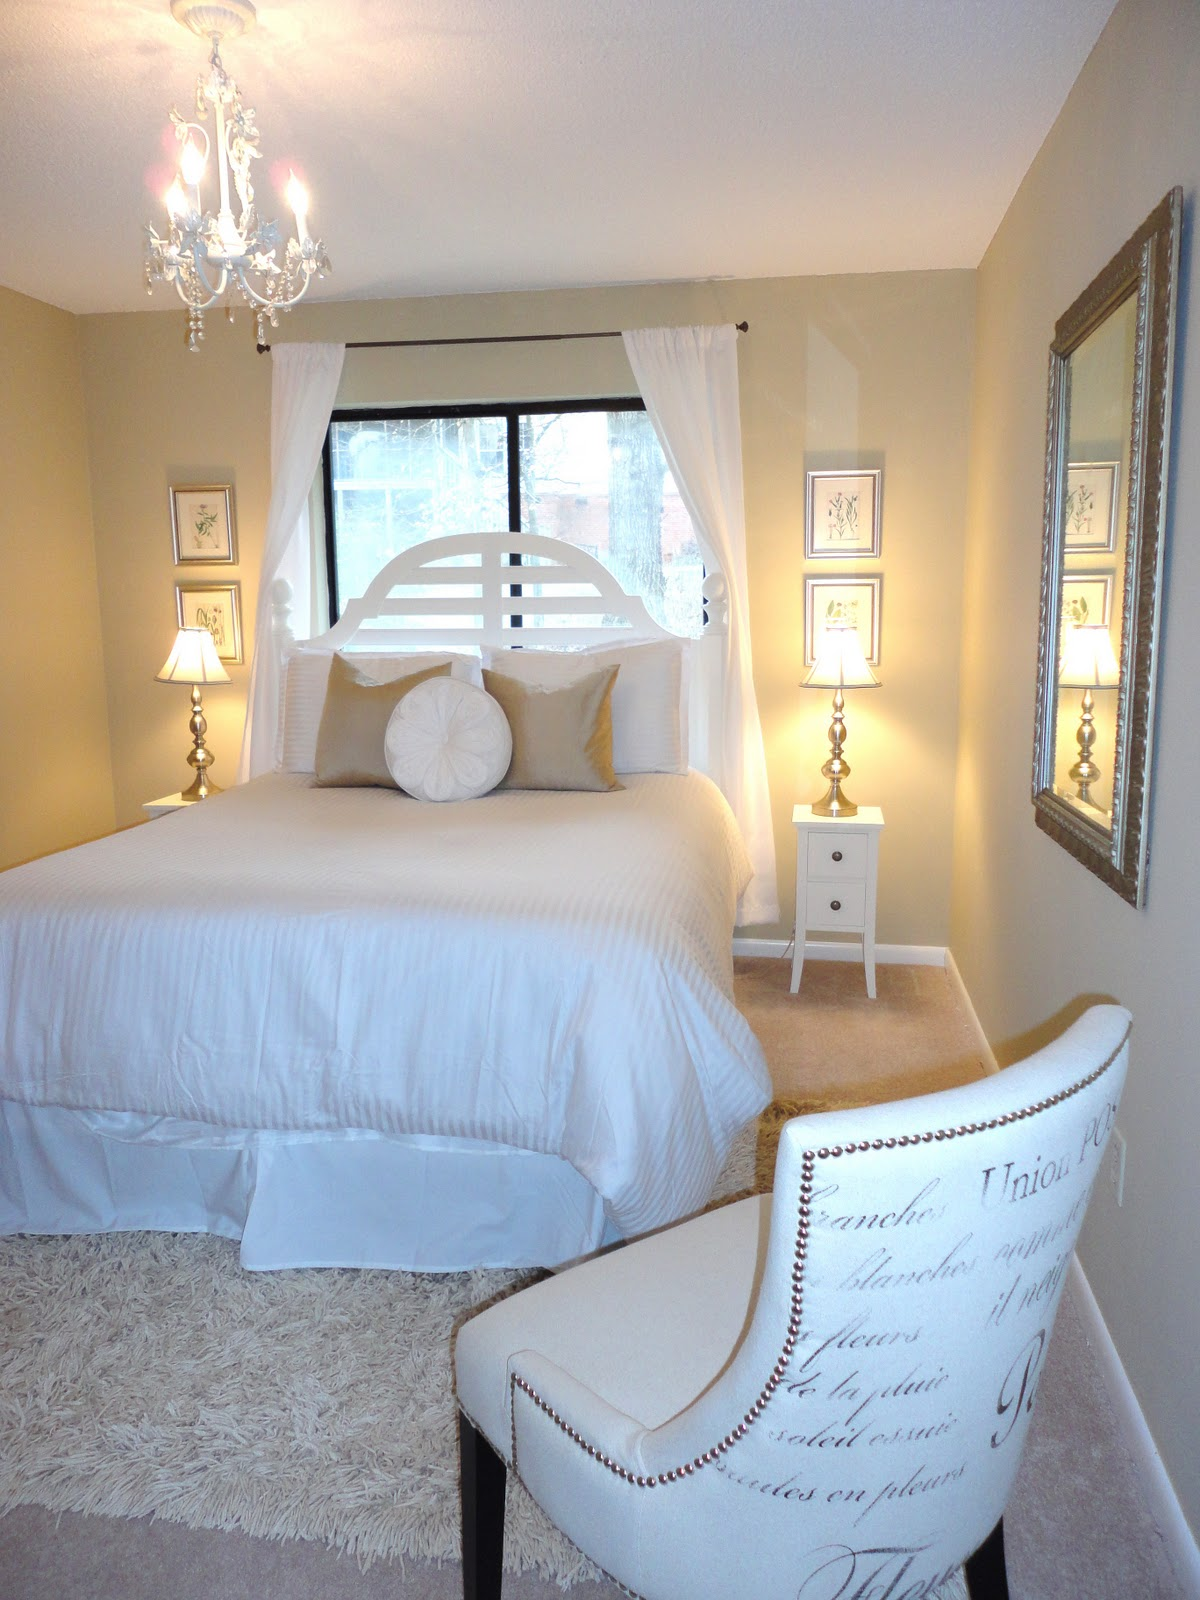 Livelovediy guest bedroom makeover - Guest bed options for small spaces paint ...